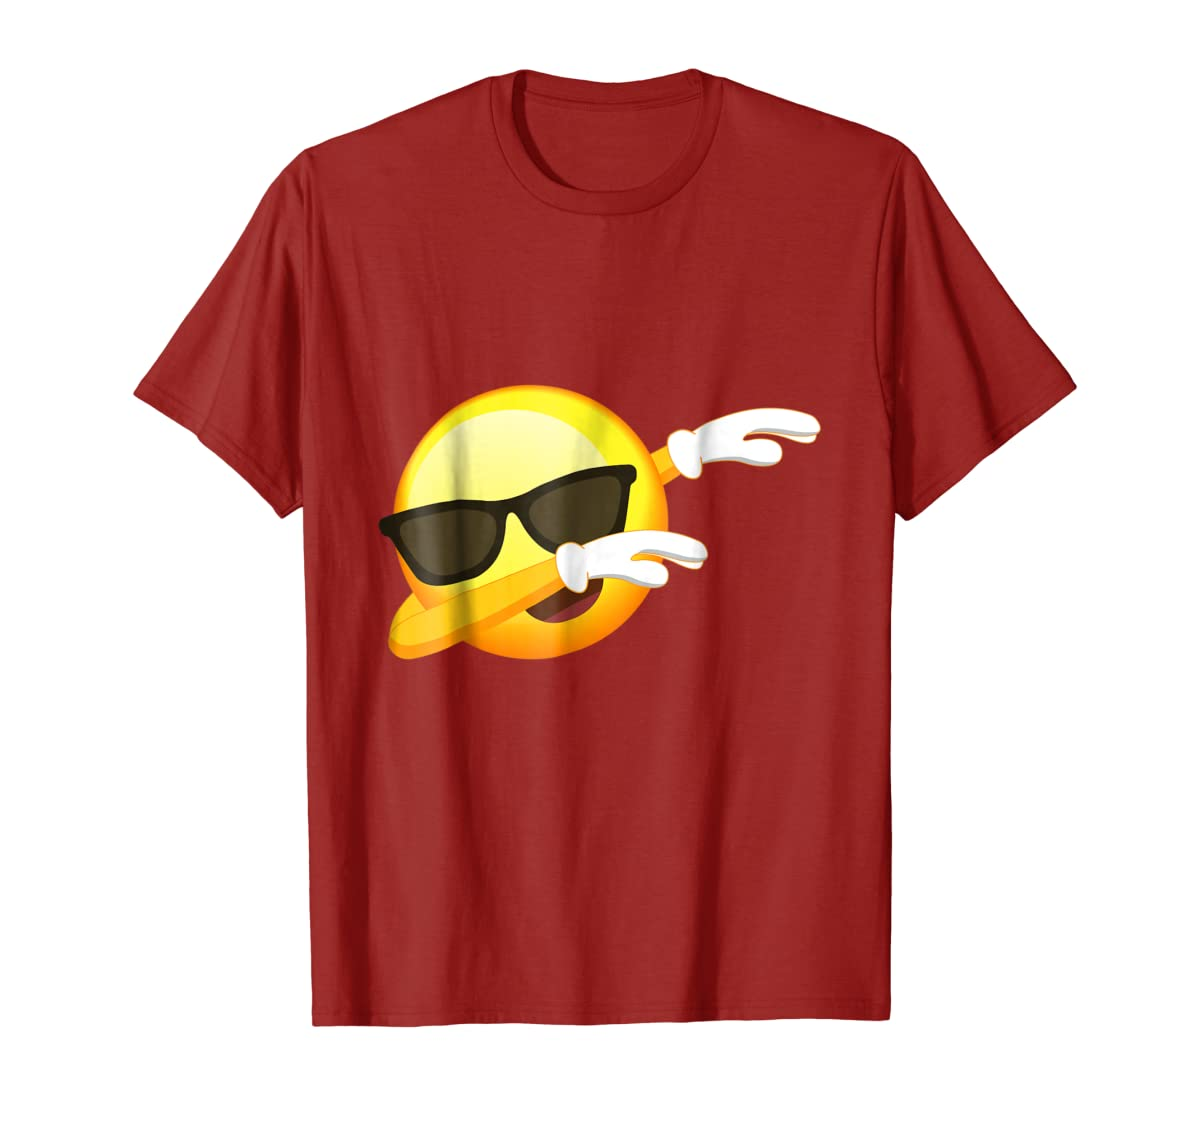 Funny Dabbing Emoji Shirt - Cool Emoji Dab T-Shirt-Men's T-Shirt-Red